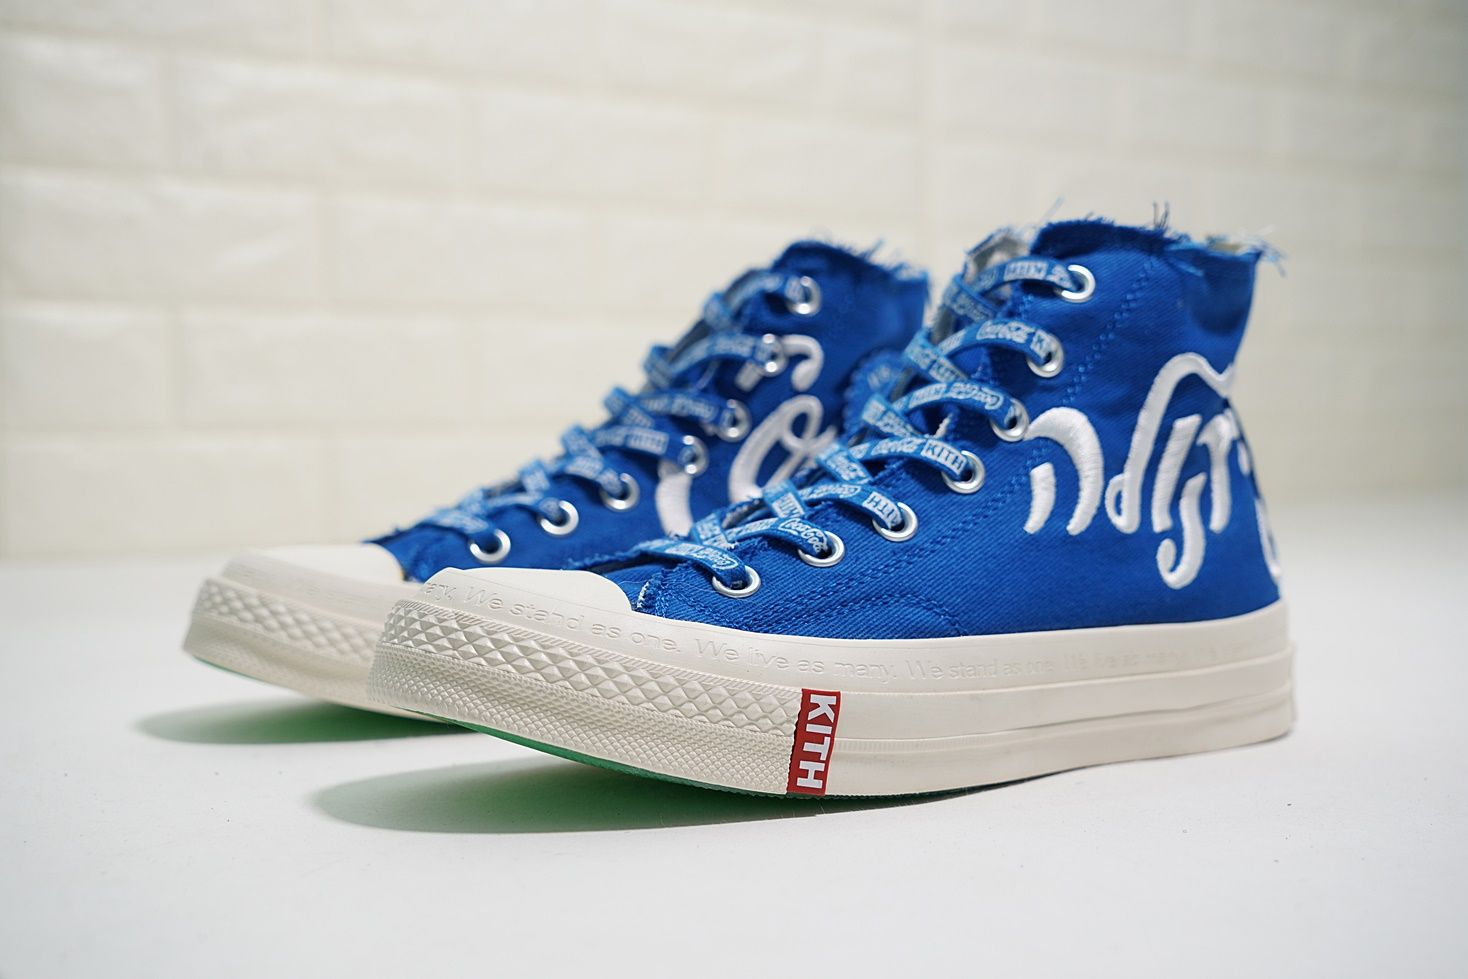 794aeacbf1d KITH X COCA COLA CONVERSE CHUCK TAYLOR ALL STAR ROYAL BLUE 162987C ...